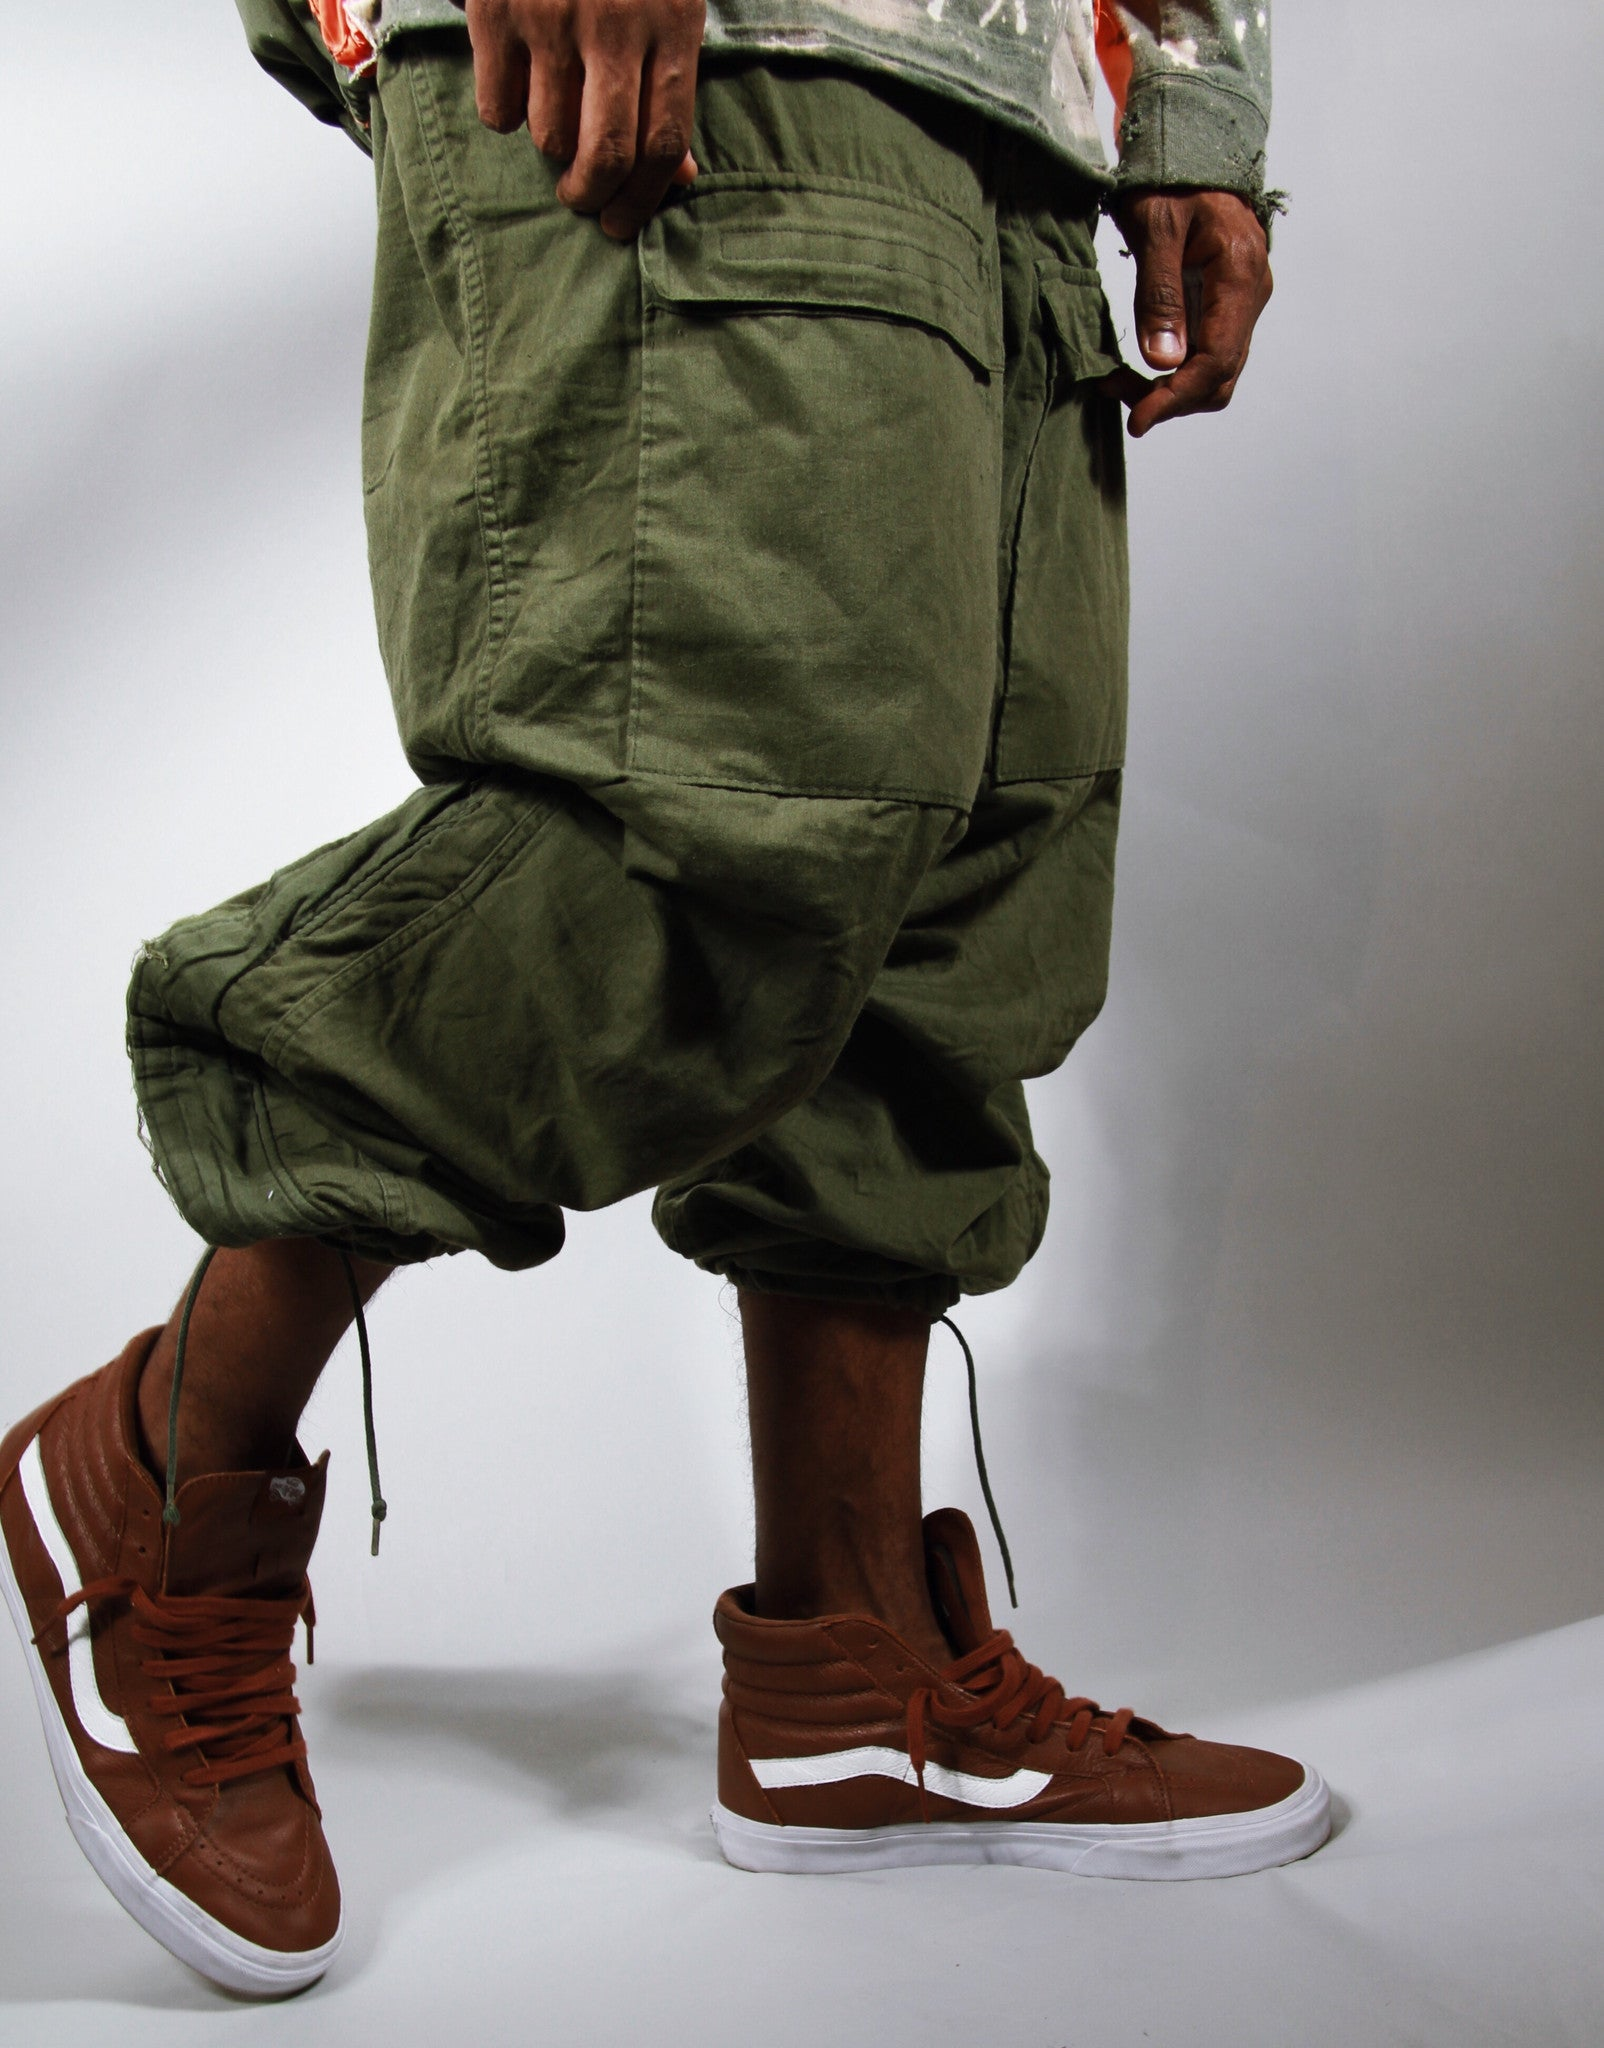 STAND UP FIGHTER PANTS